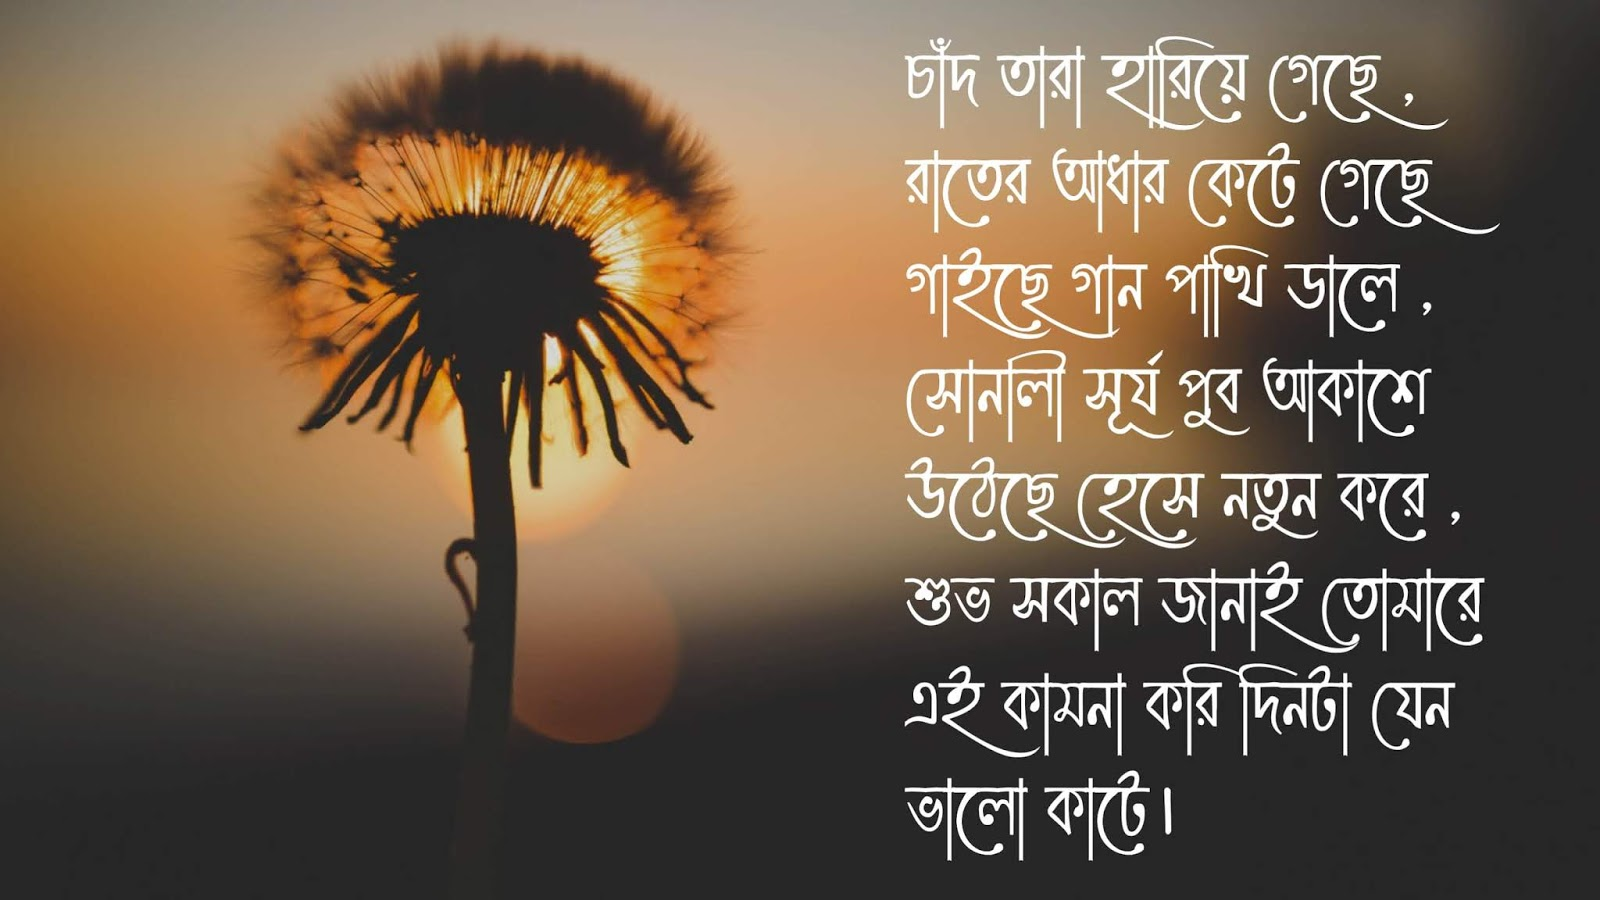 Subho Sokal sms in bengali